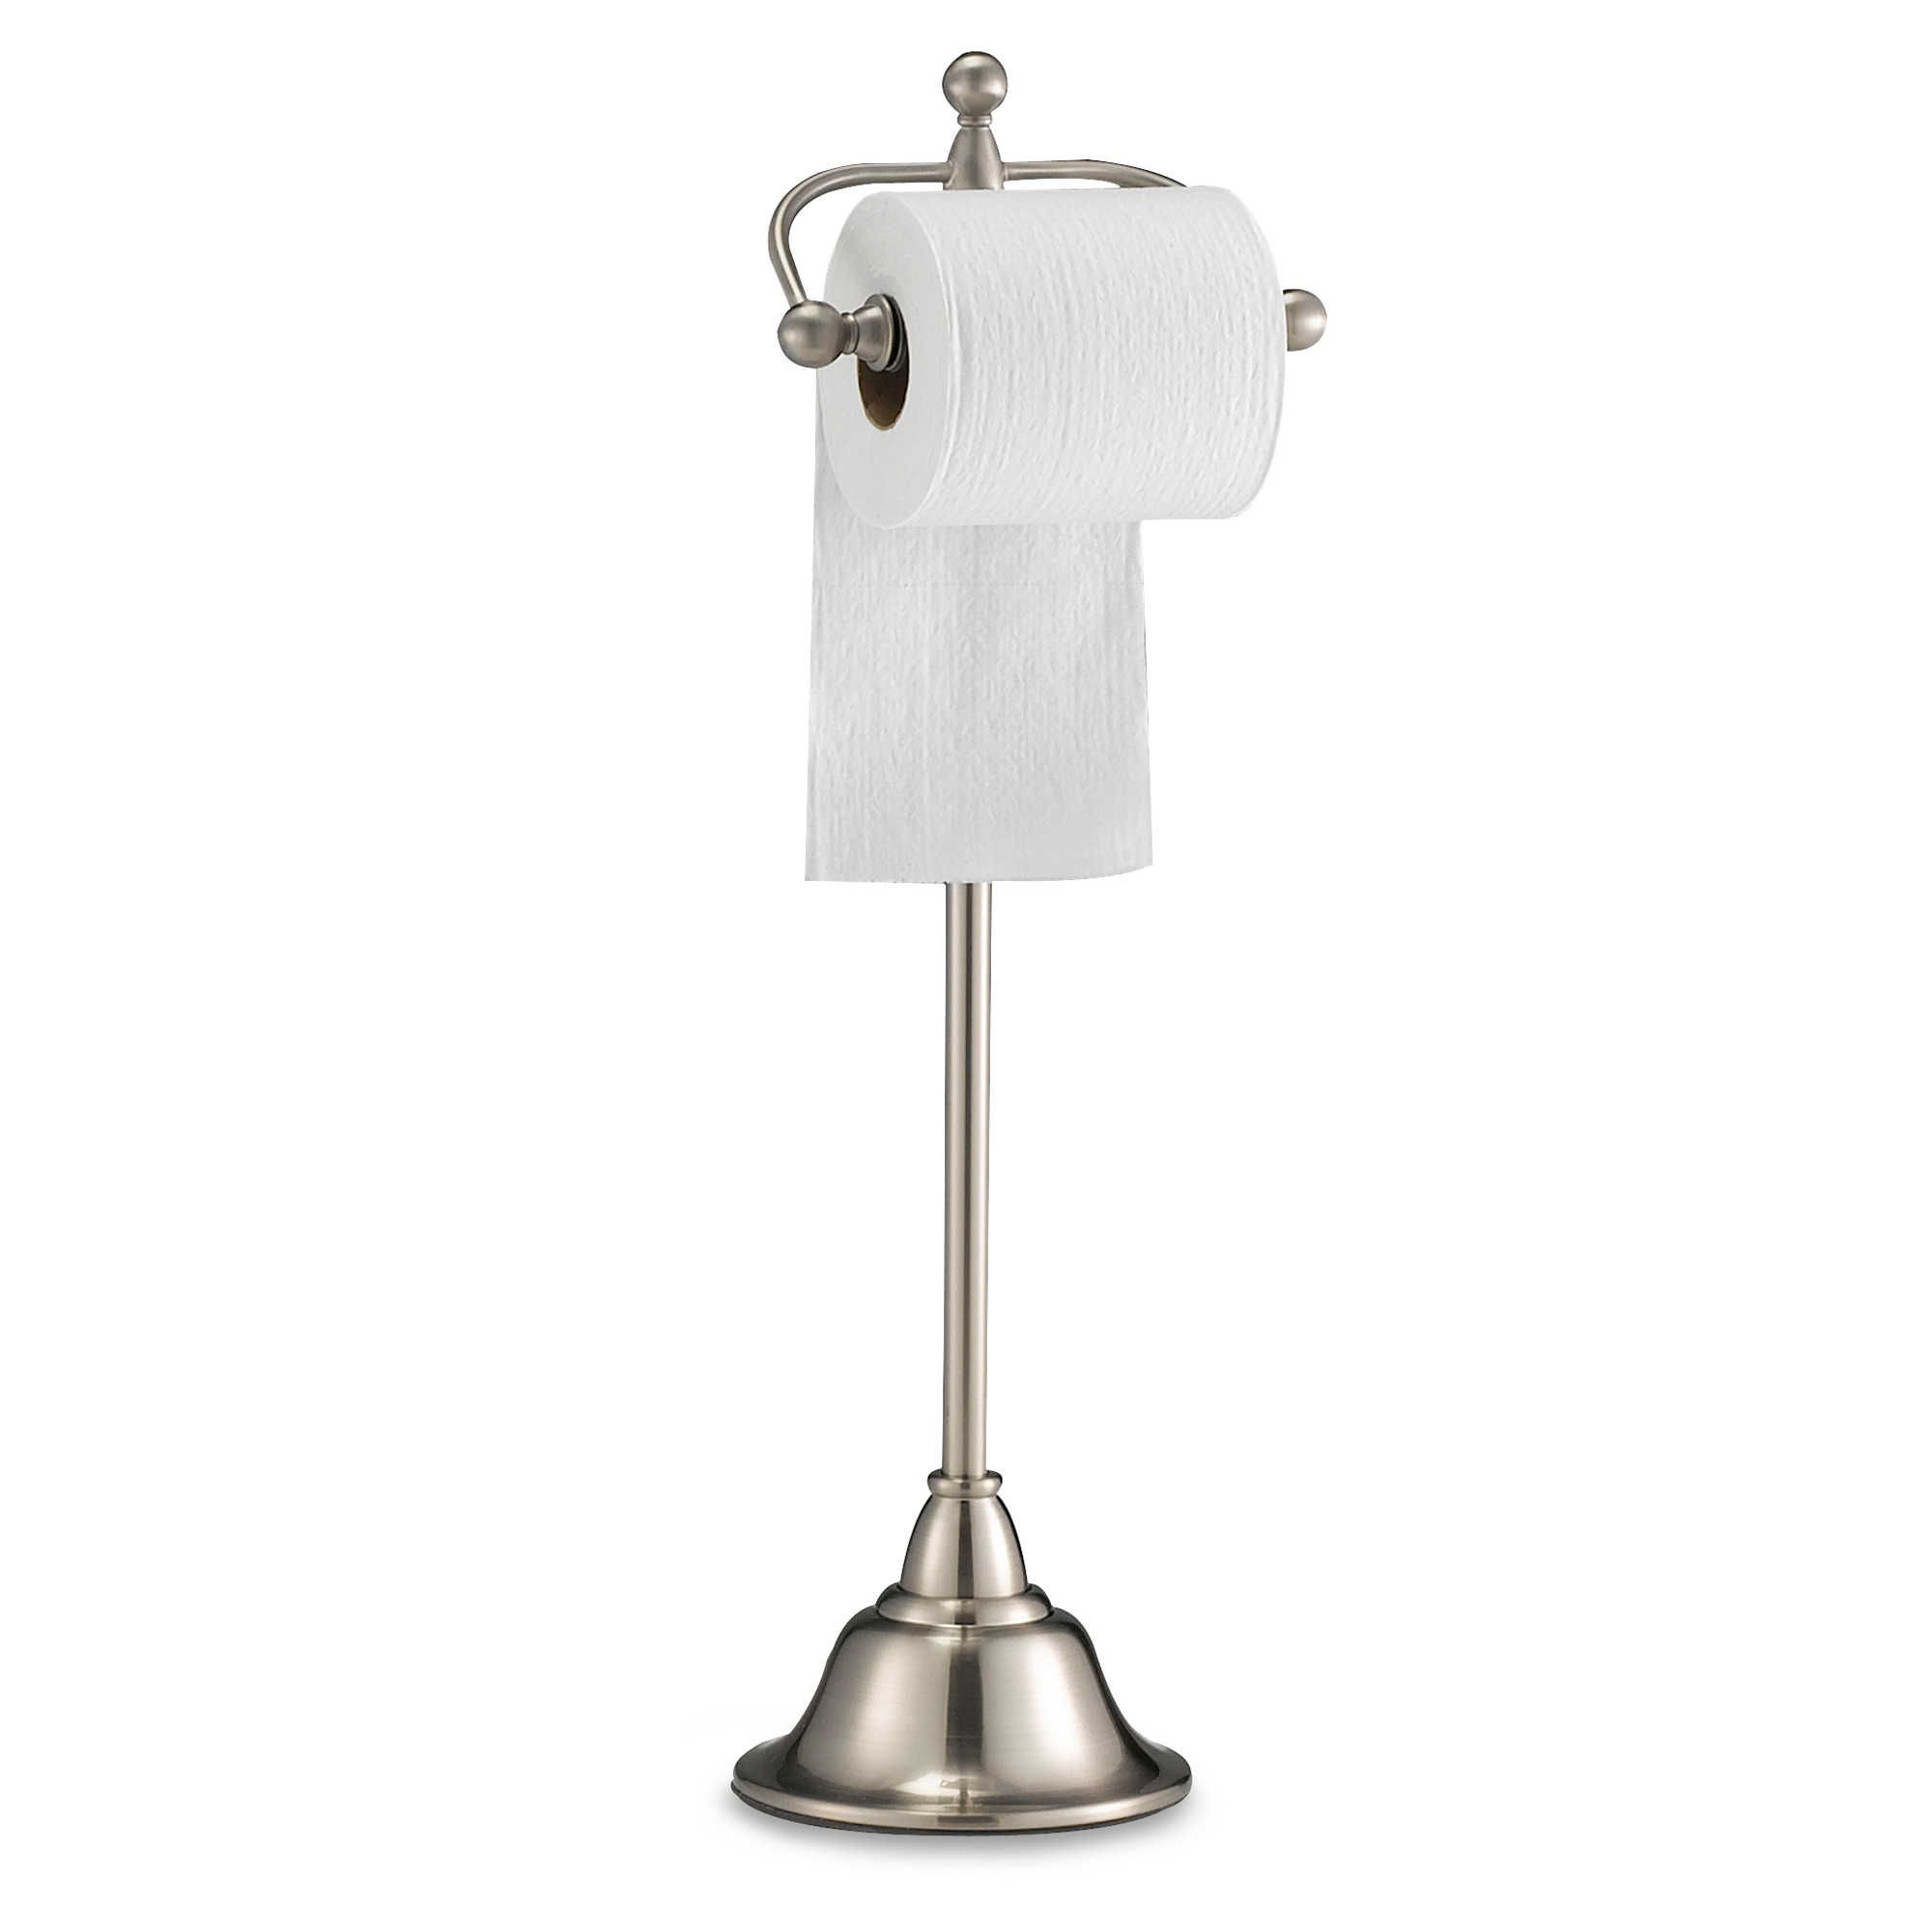 Floor Toilet Paper Stand Standing Toilet Paper Holder Home Decor